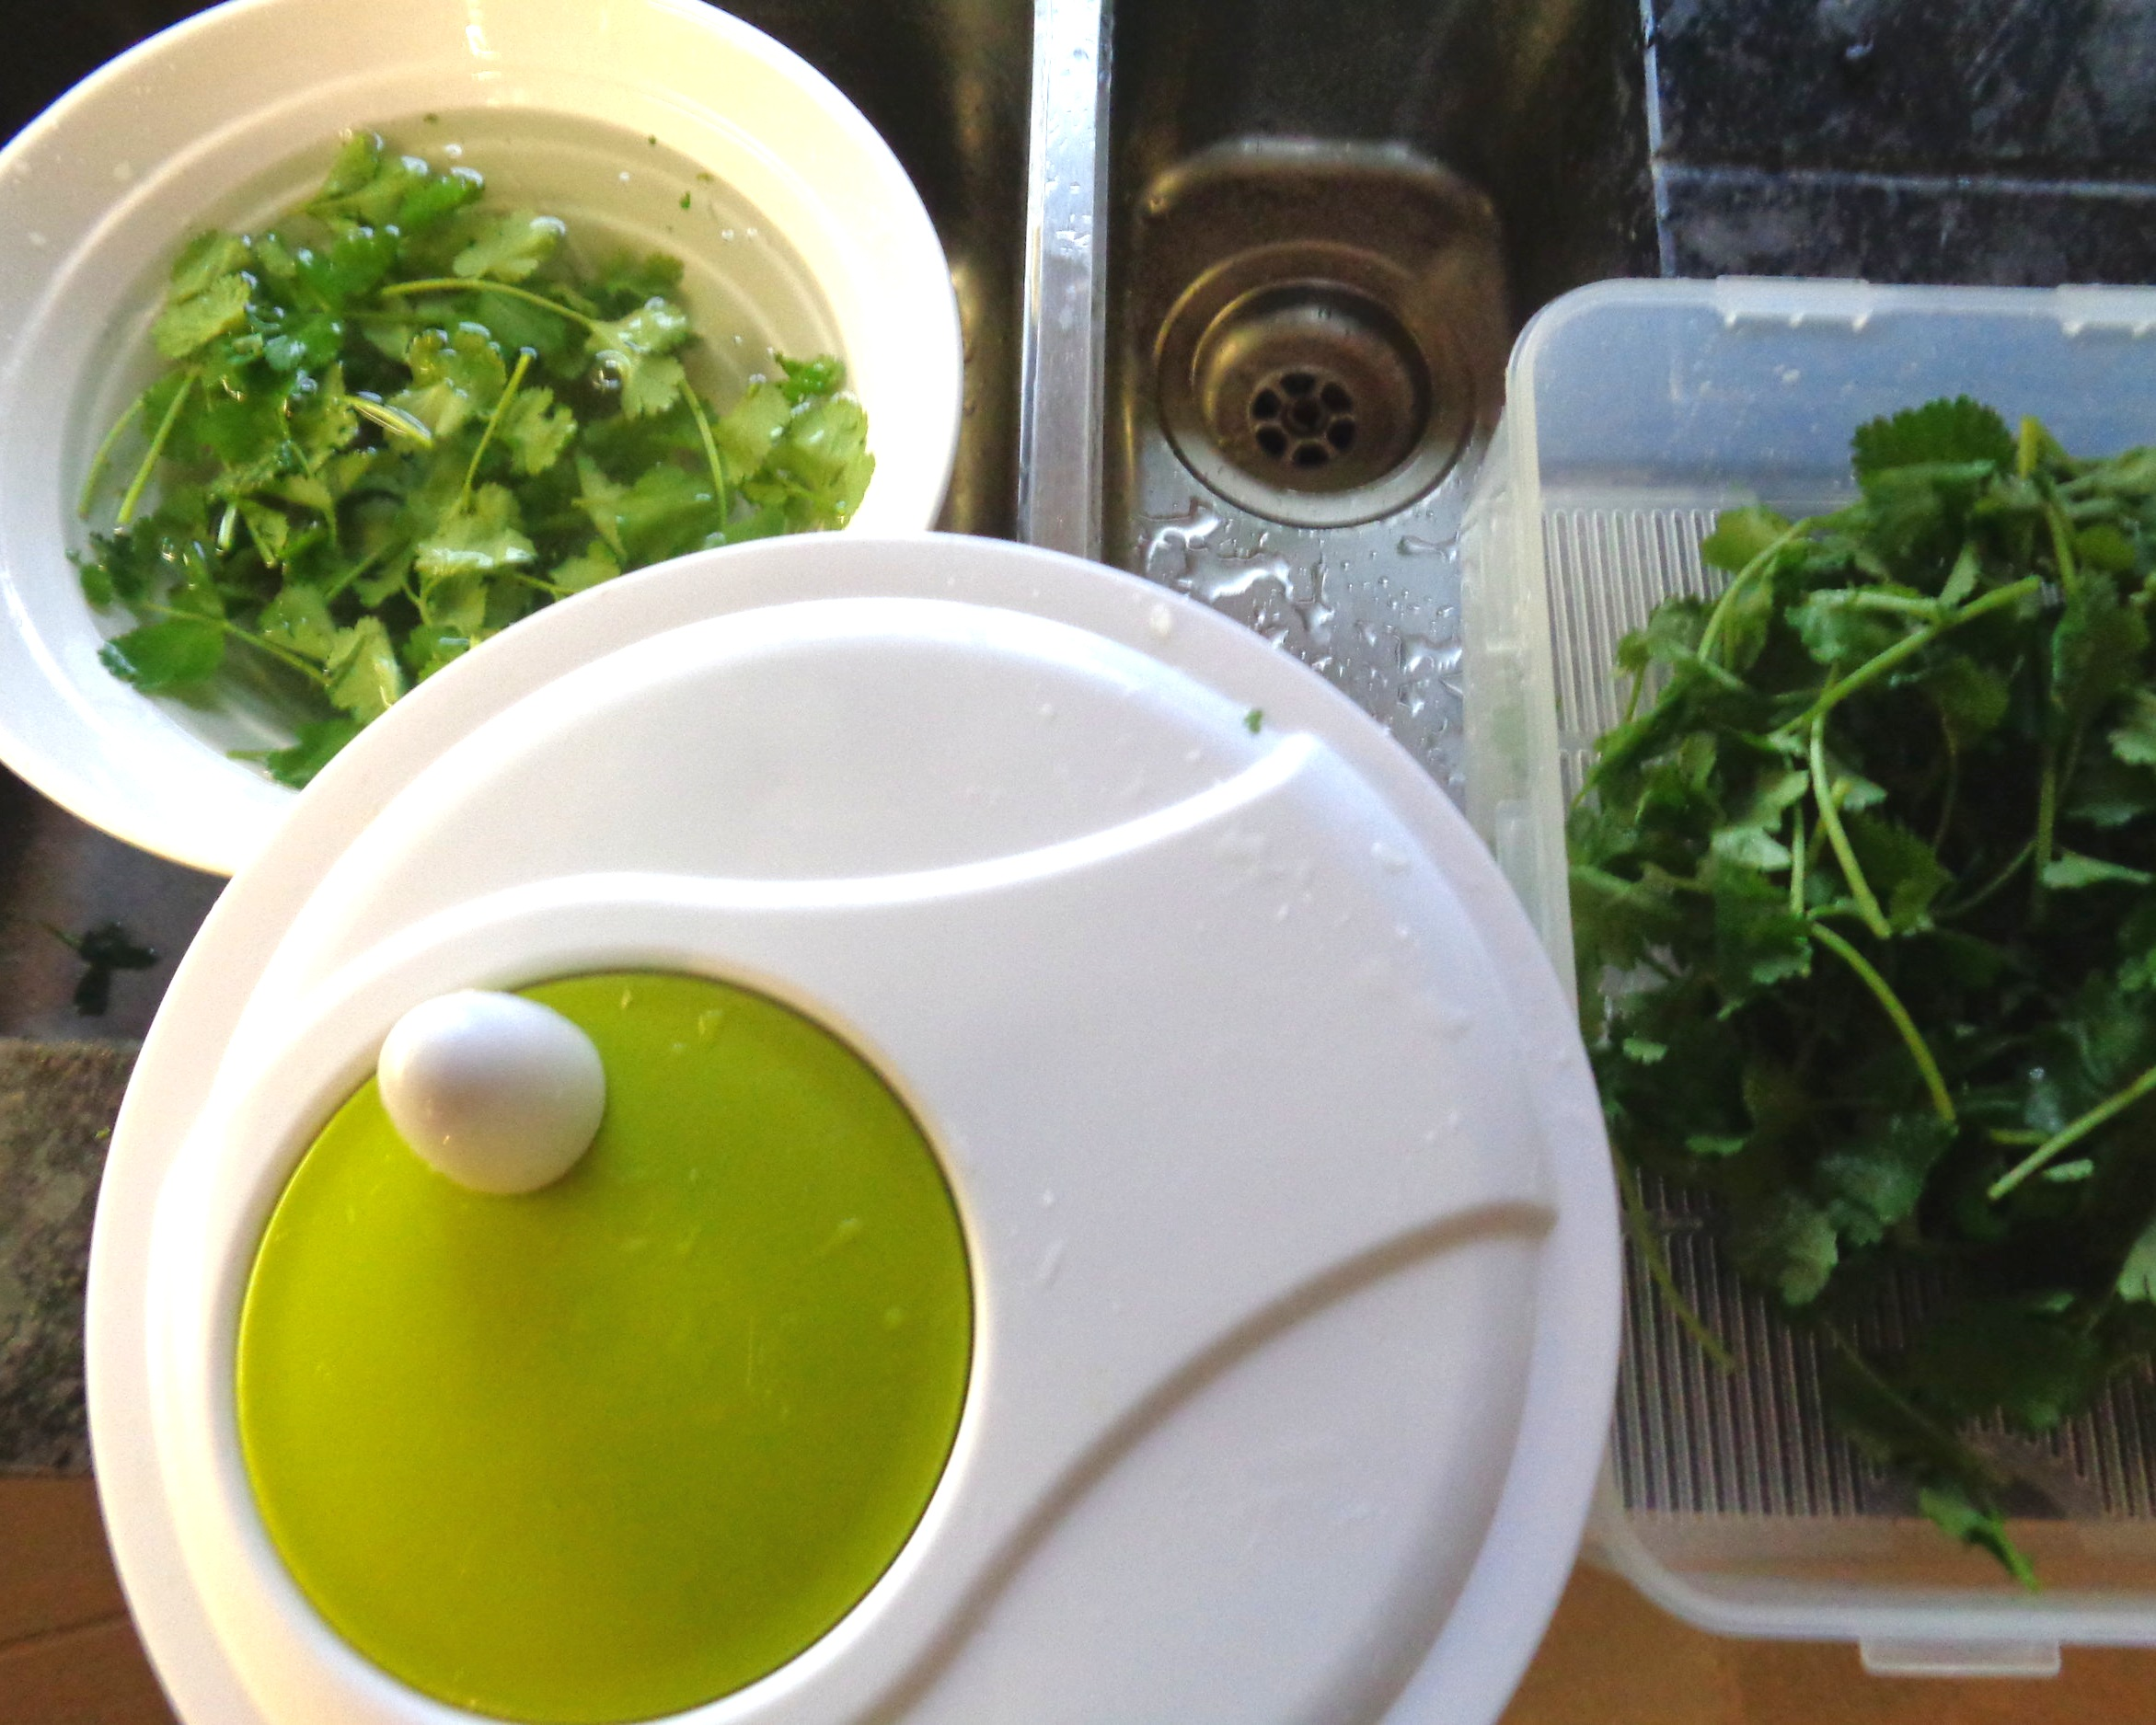 Use a salad spinner to dry your herbs then store them in a large airtight container, one that gives them lots of space. Also one with a raised base works especially well, keeping the herbs good for longer. Store in the fridge.